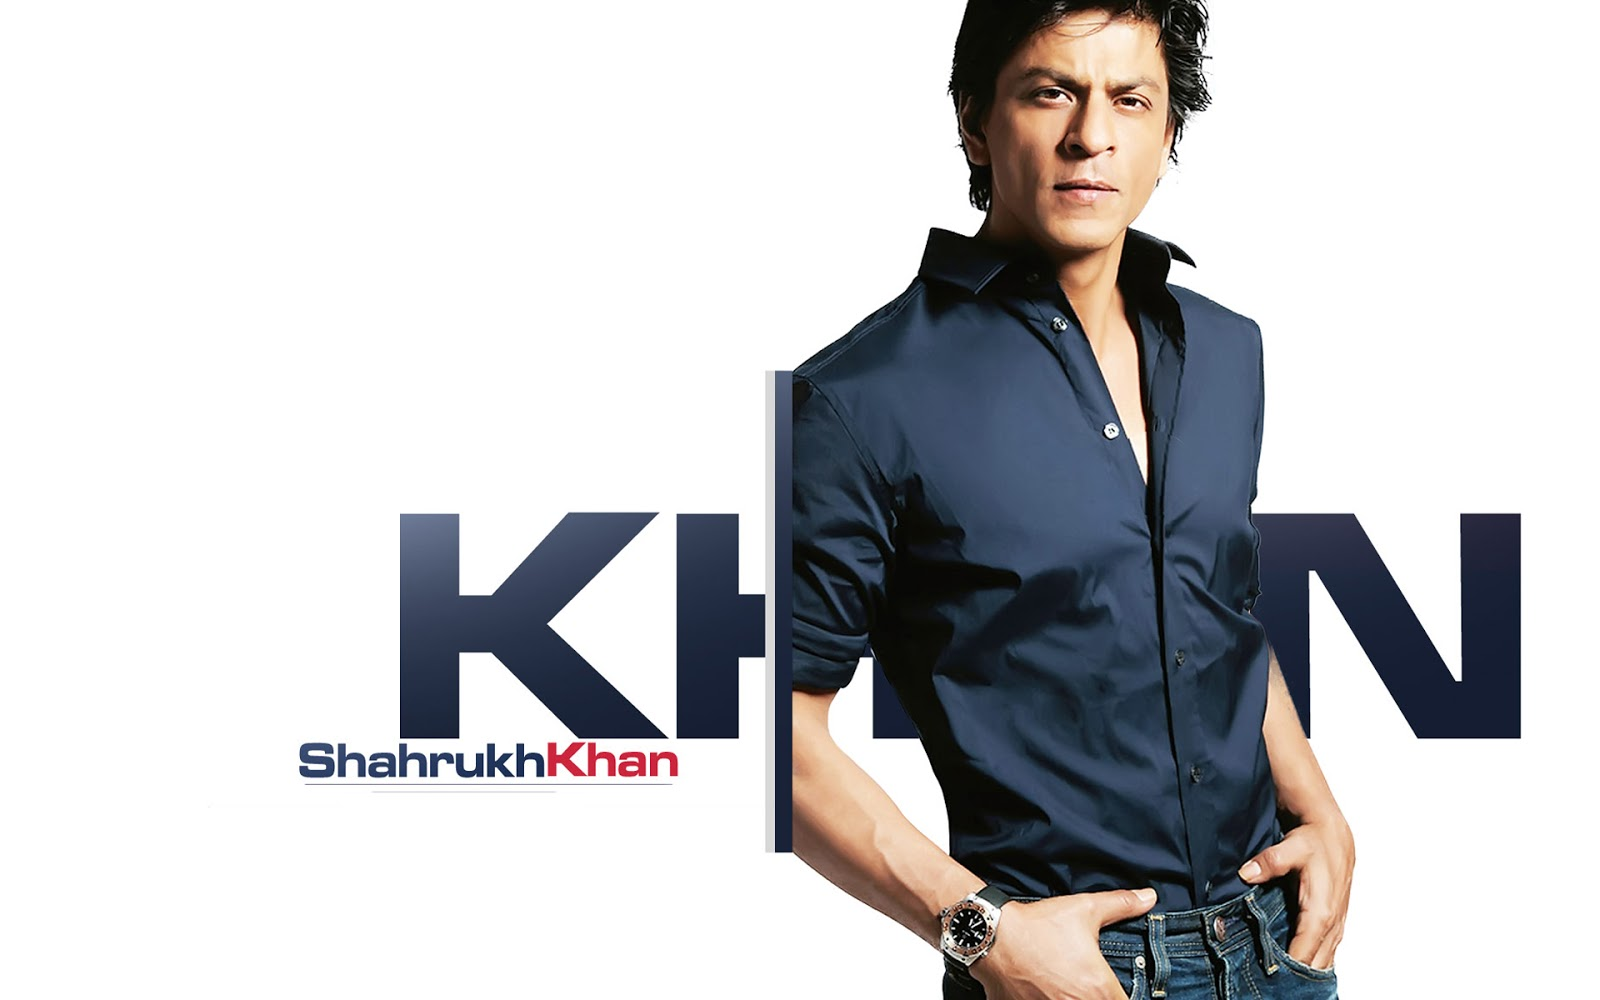 hd wallpapers: download shahrukh khan wallpapers hd 2015 1080p.